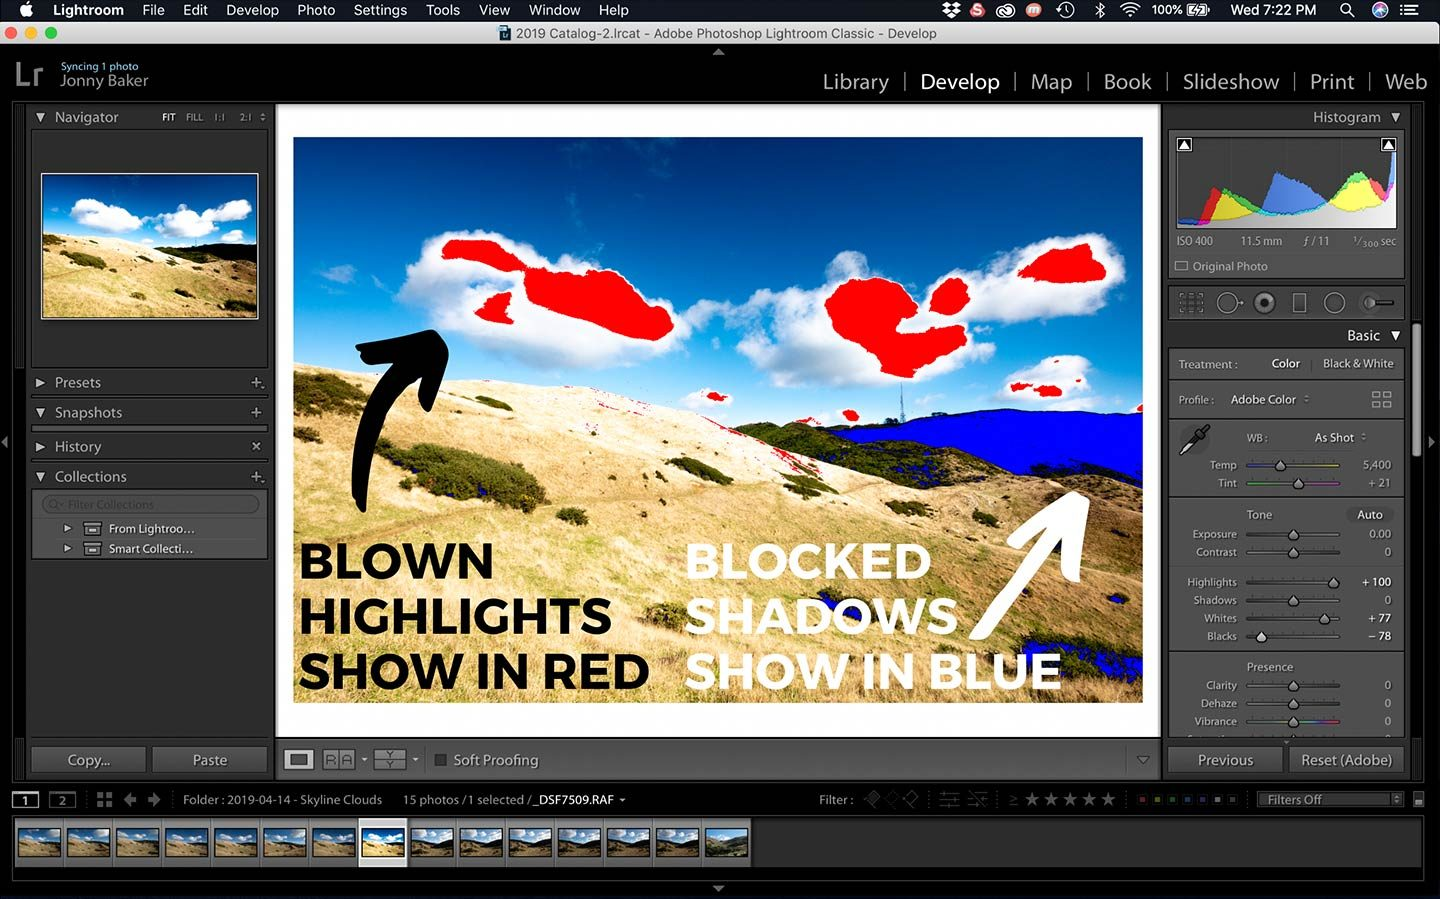 A great Lightroom Hack that is shown in this screenshot is the use of clipping warnings. These help you to see whether your photos are underexposed or overexposed.